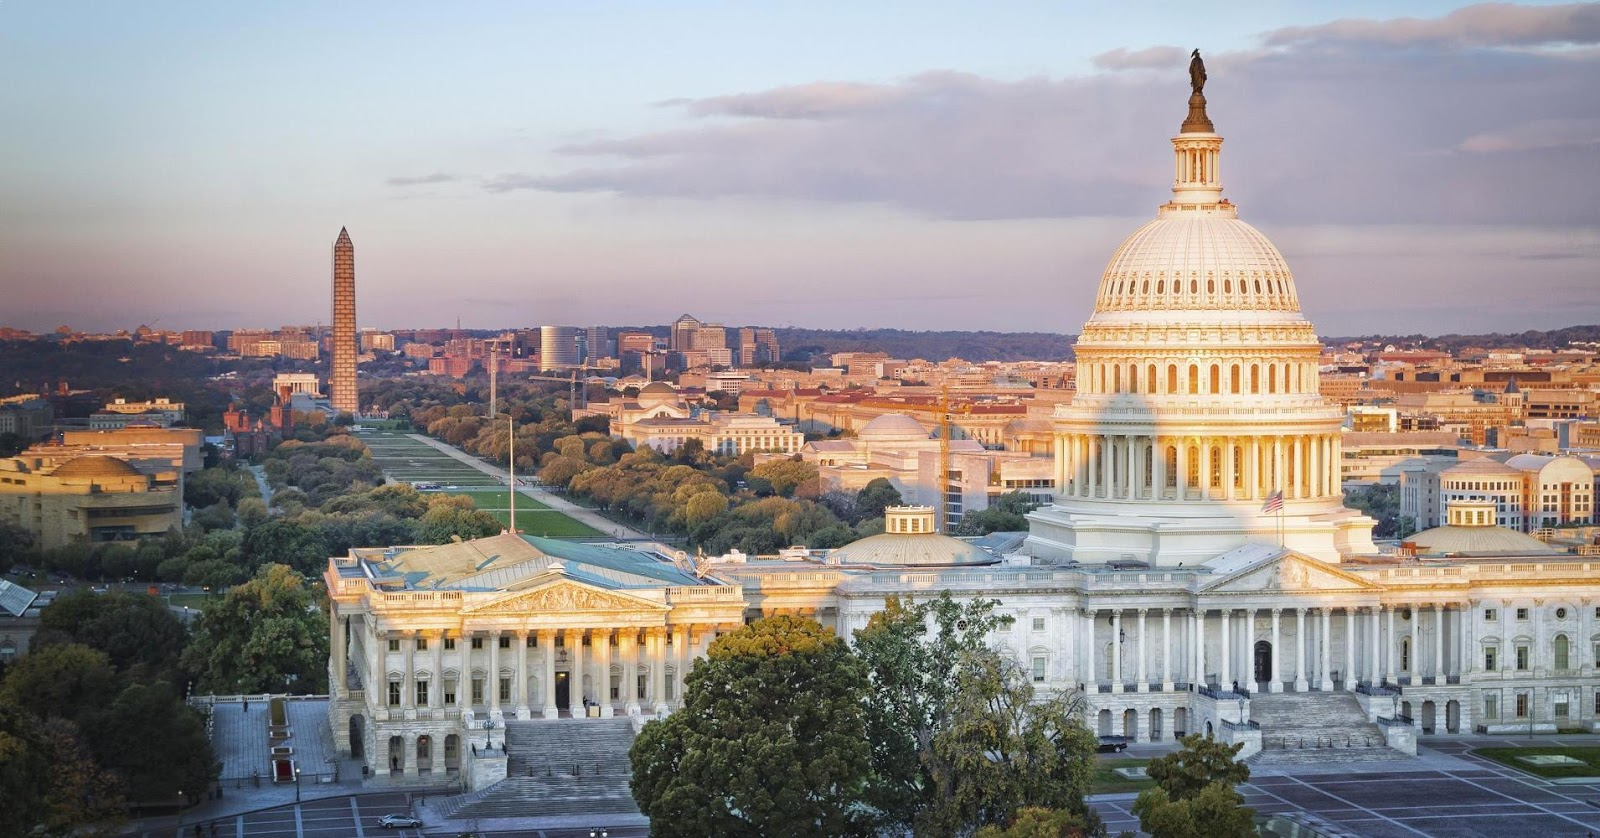 The 8 Greatest and Beautiful Place To Take Pictures in Washington DC 1